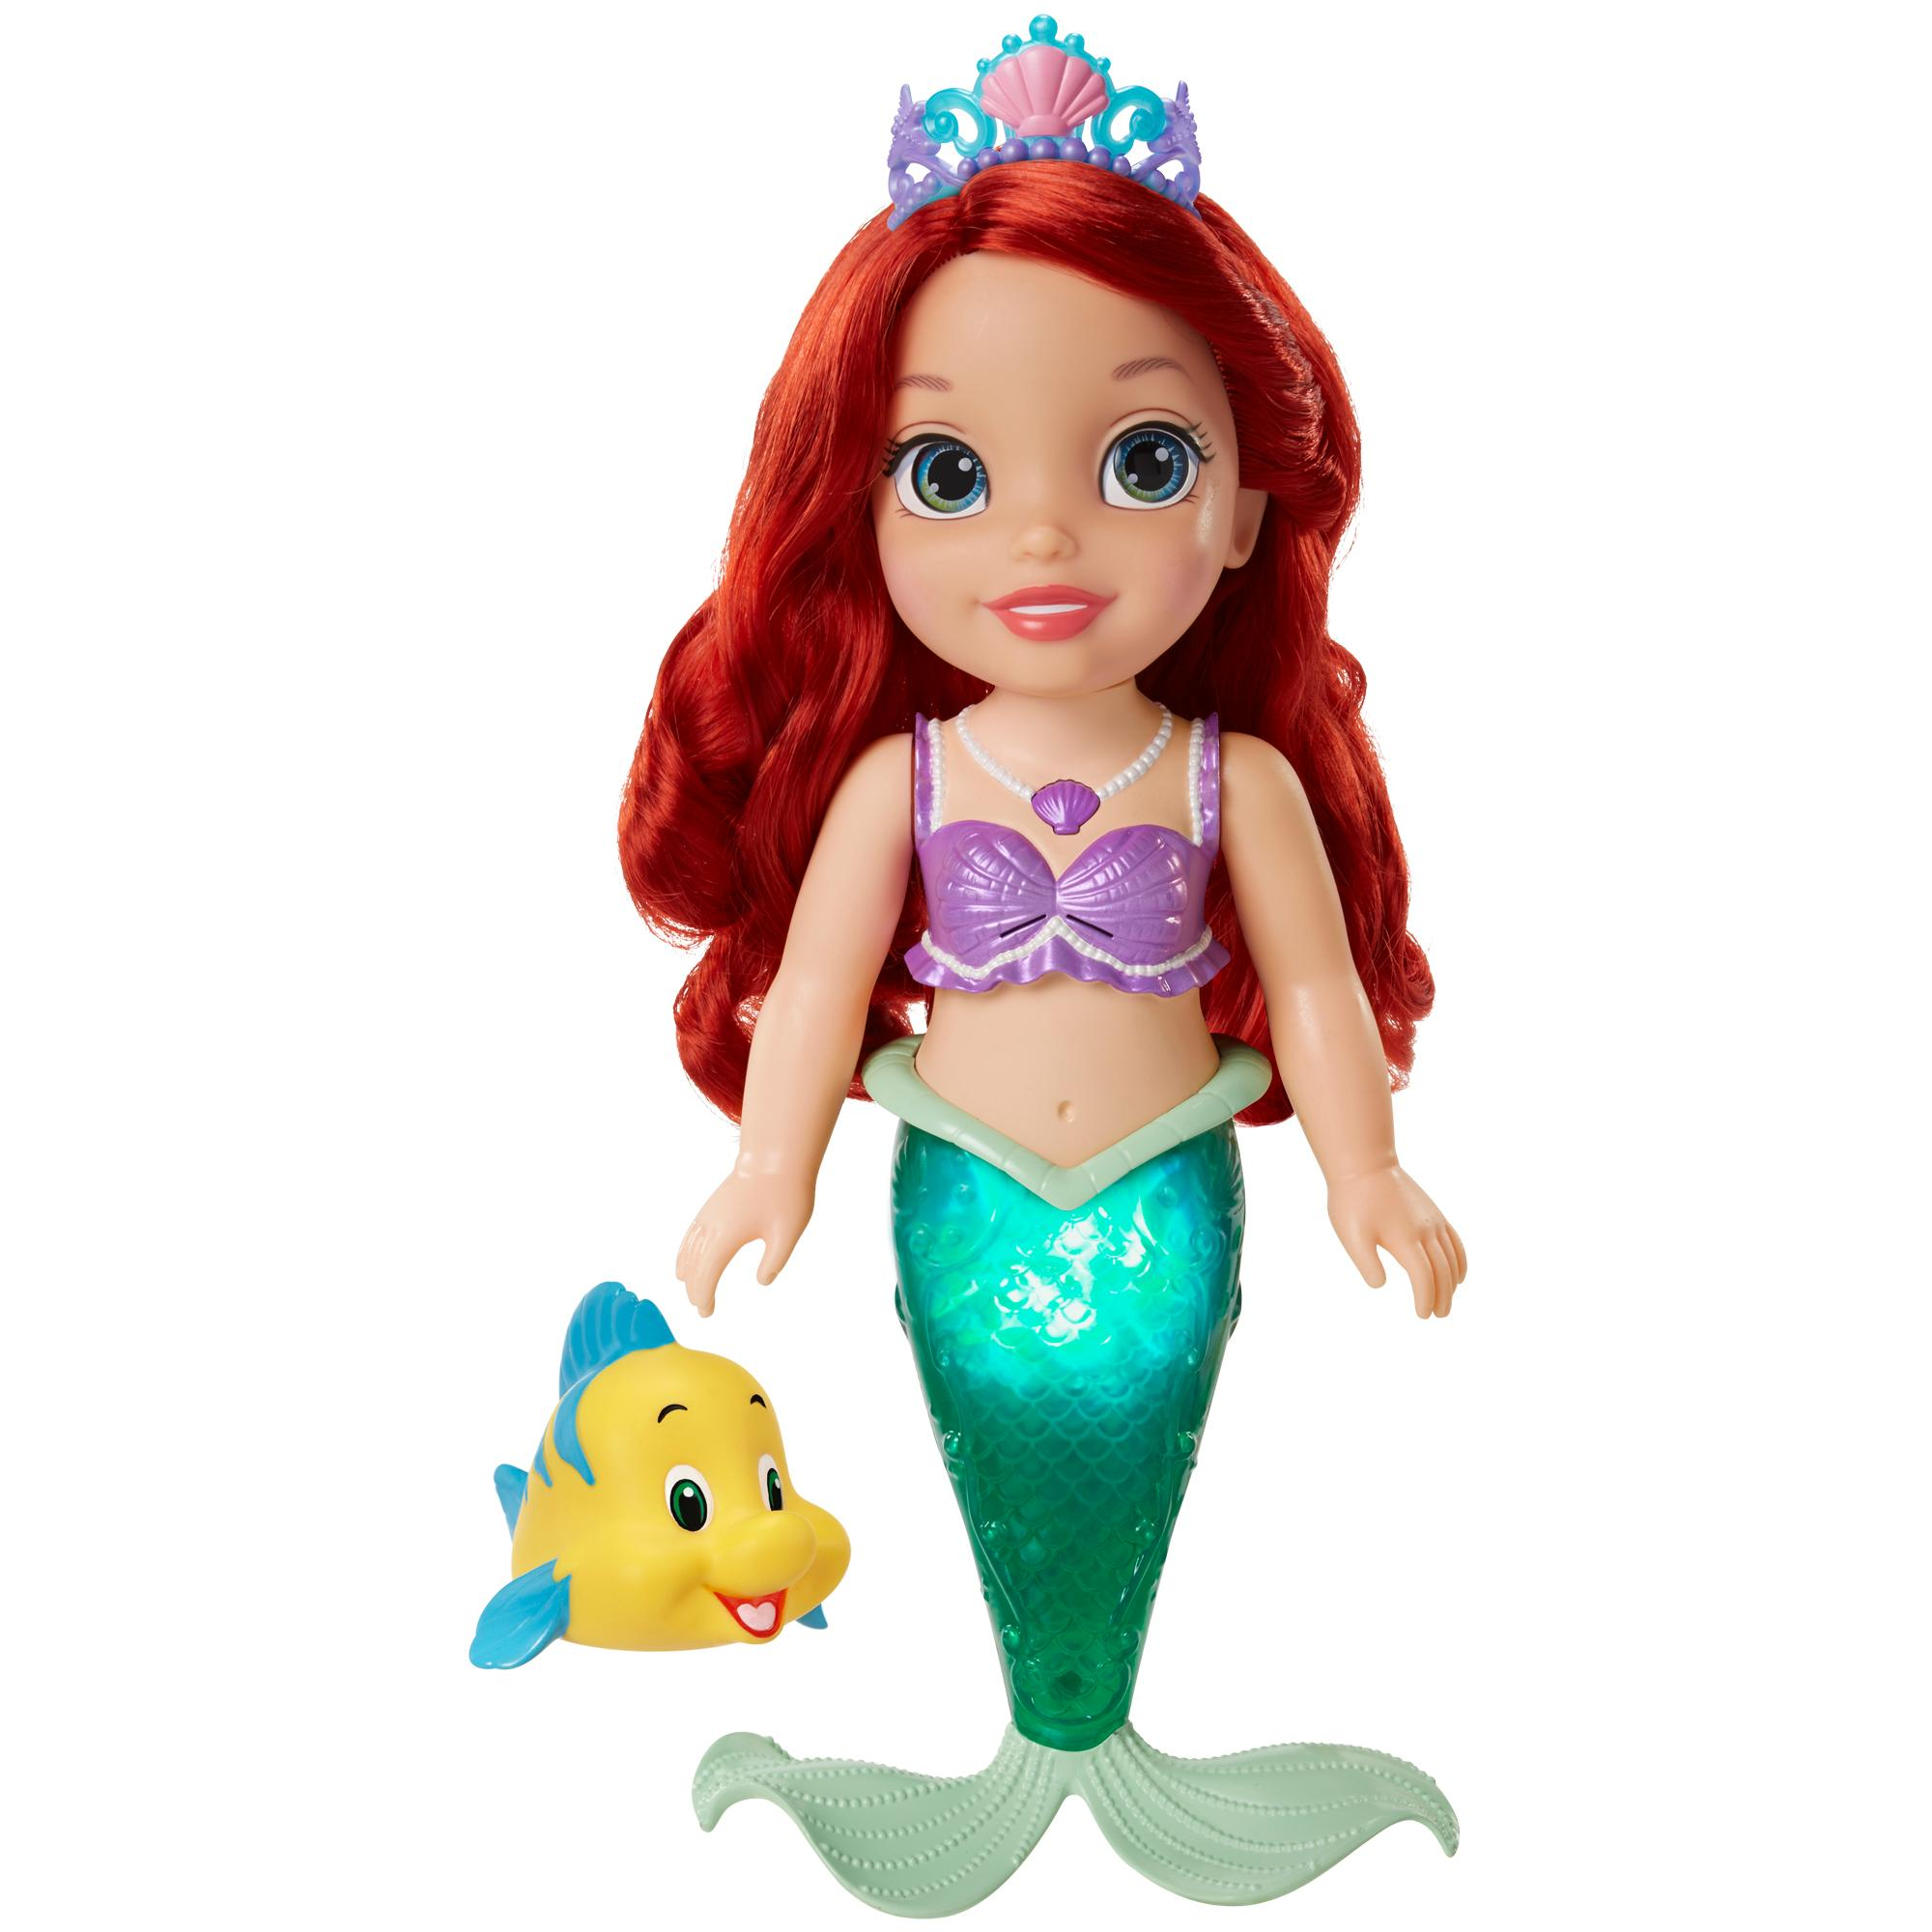 Amazon.com: Disney Princess Colors of the Sea Ariel Doll: Toys & Games